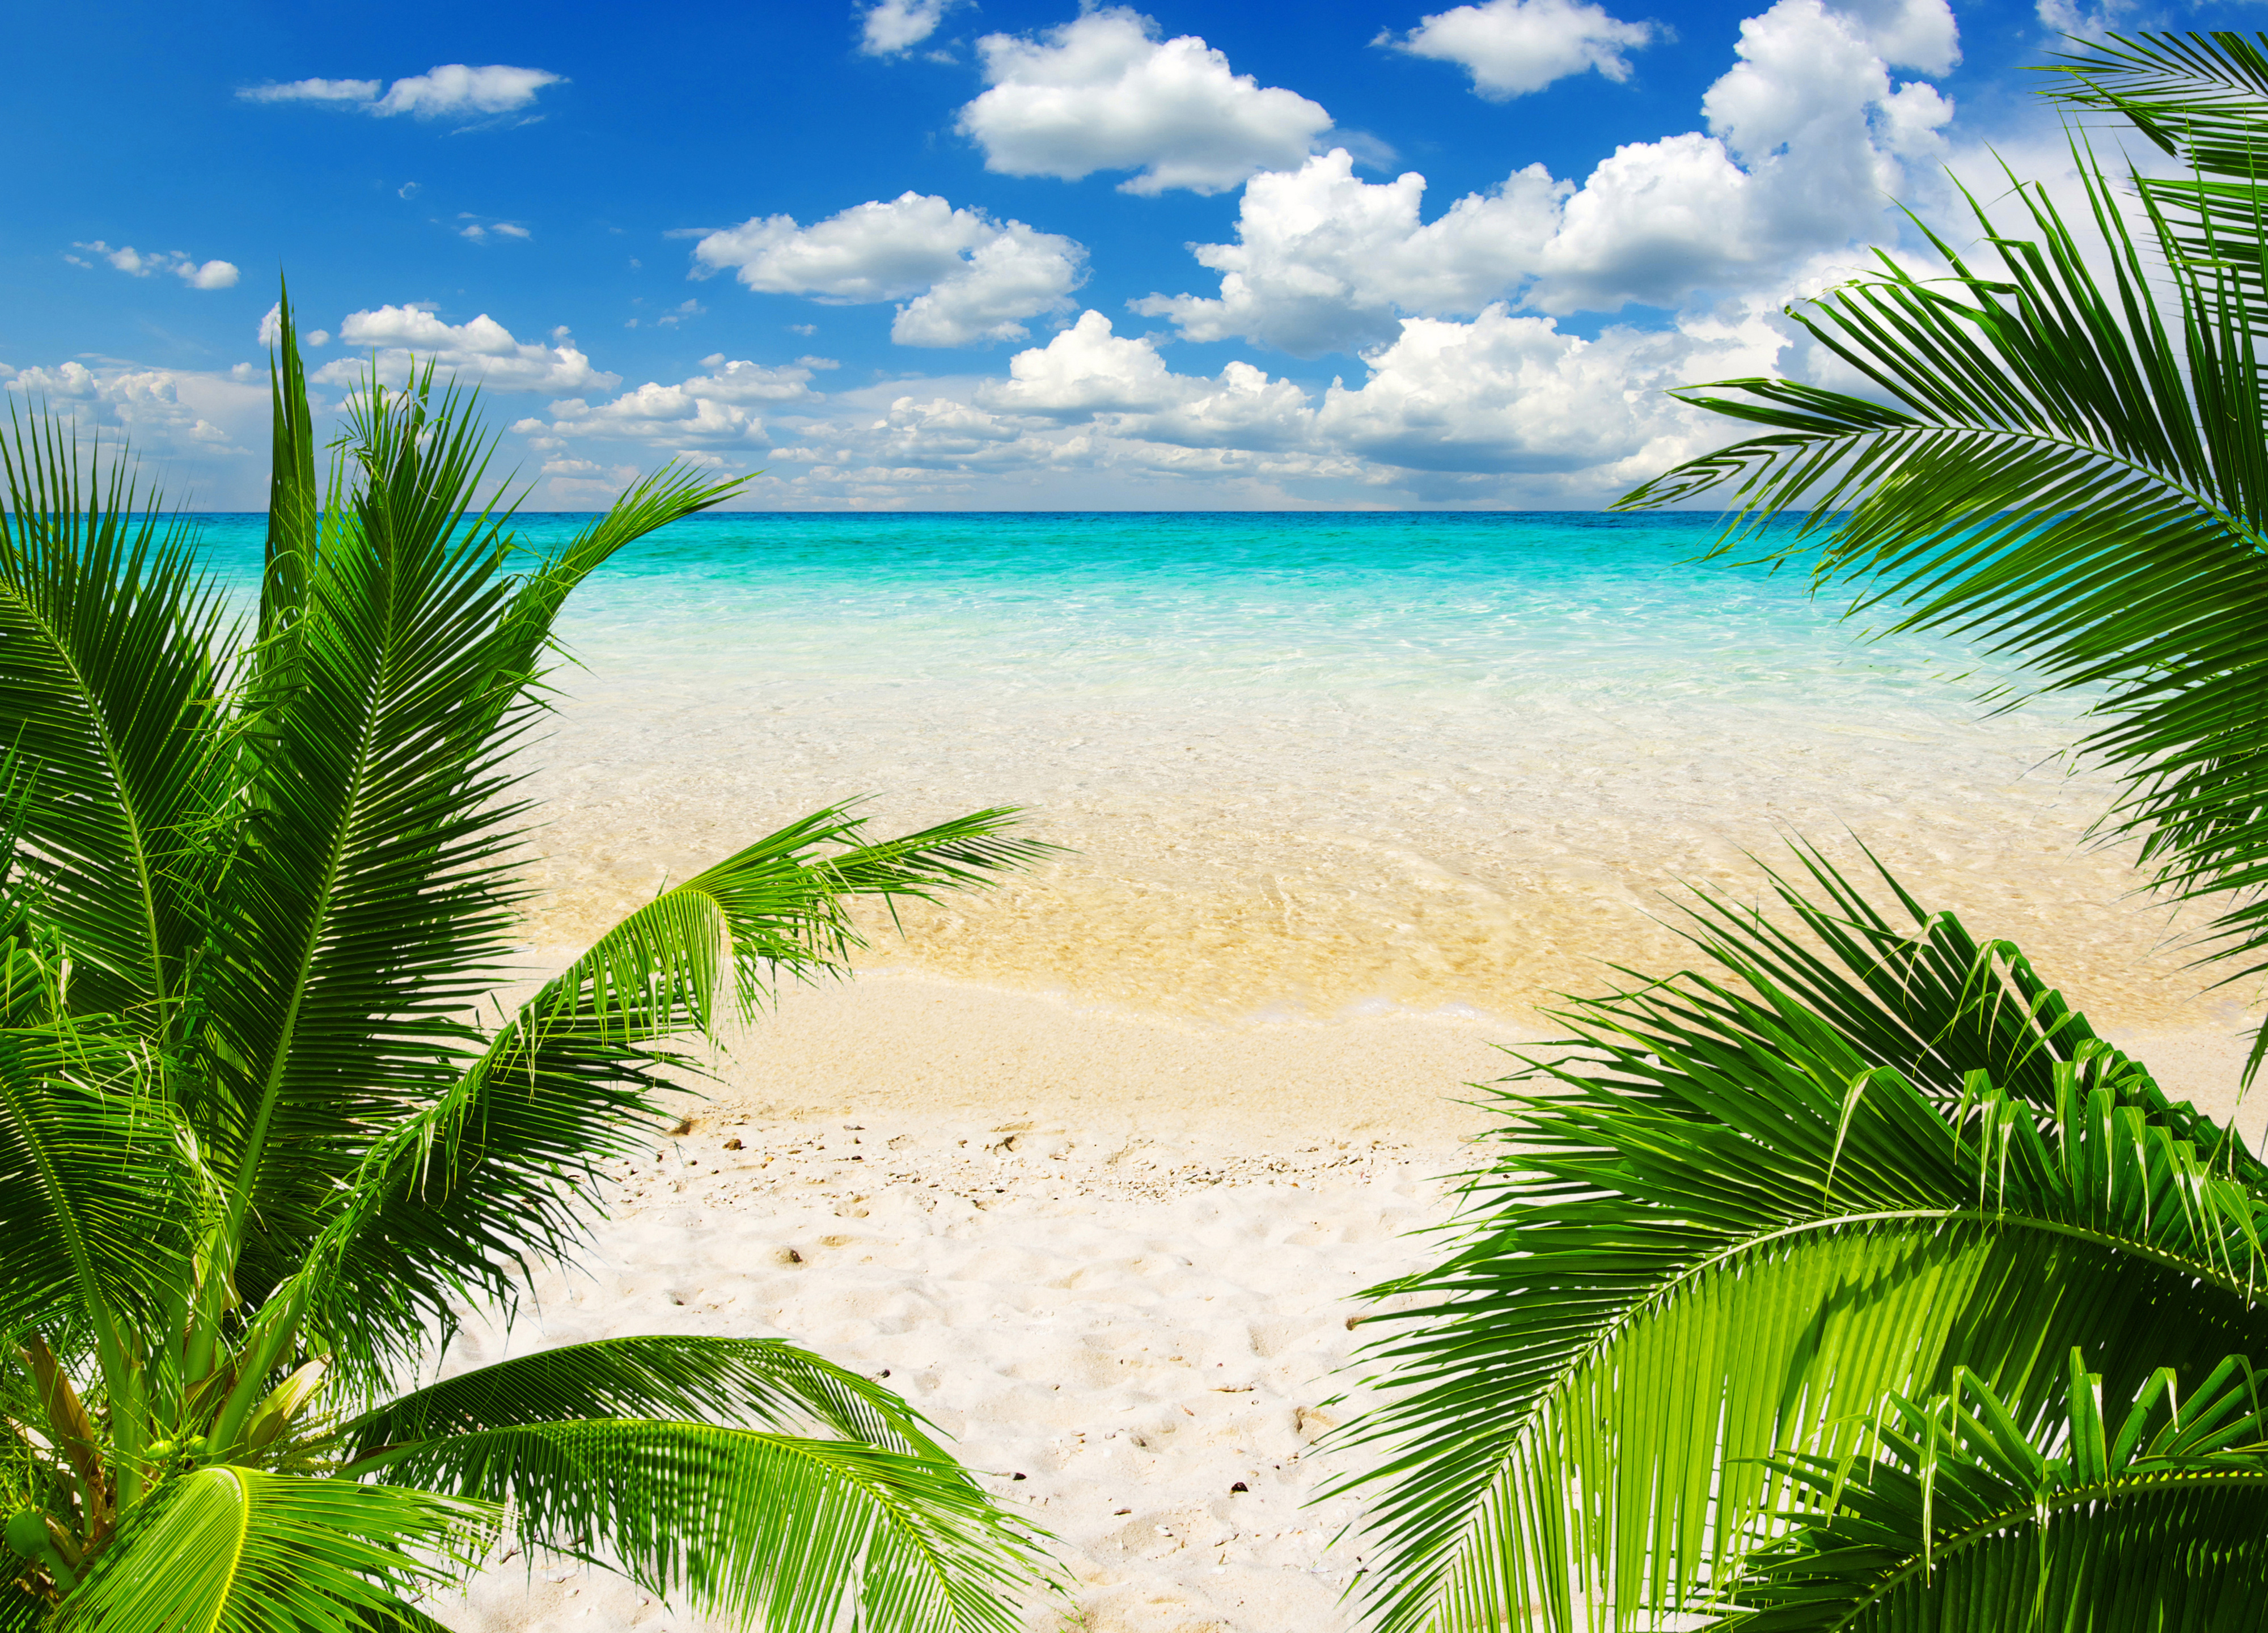 Tropic Beach Background Gallery Yopriceville   High Quality 4000x2880